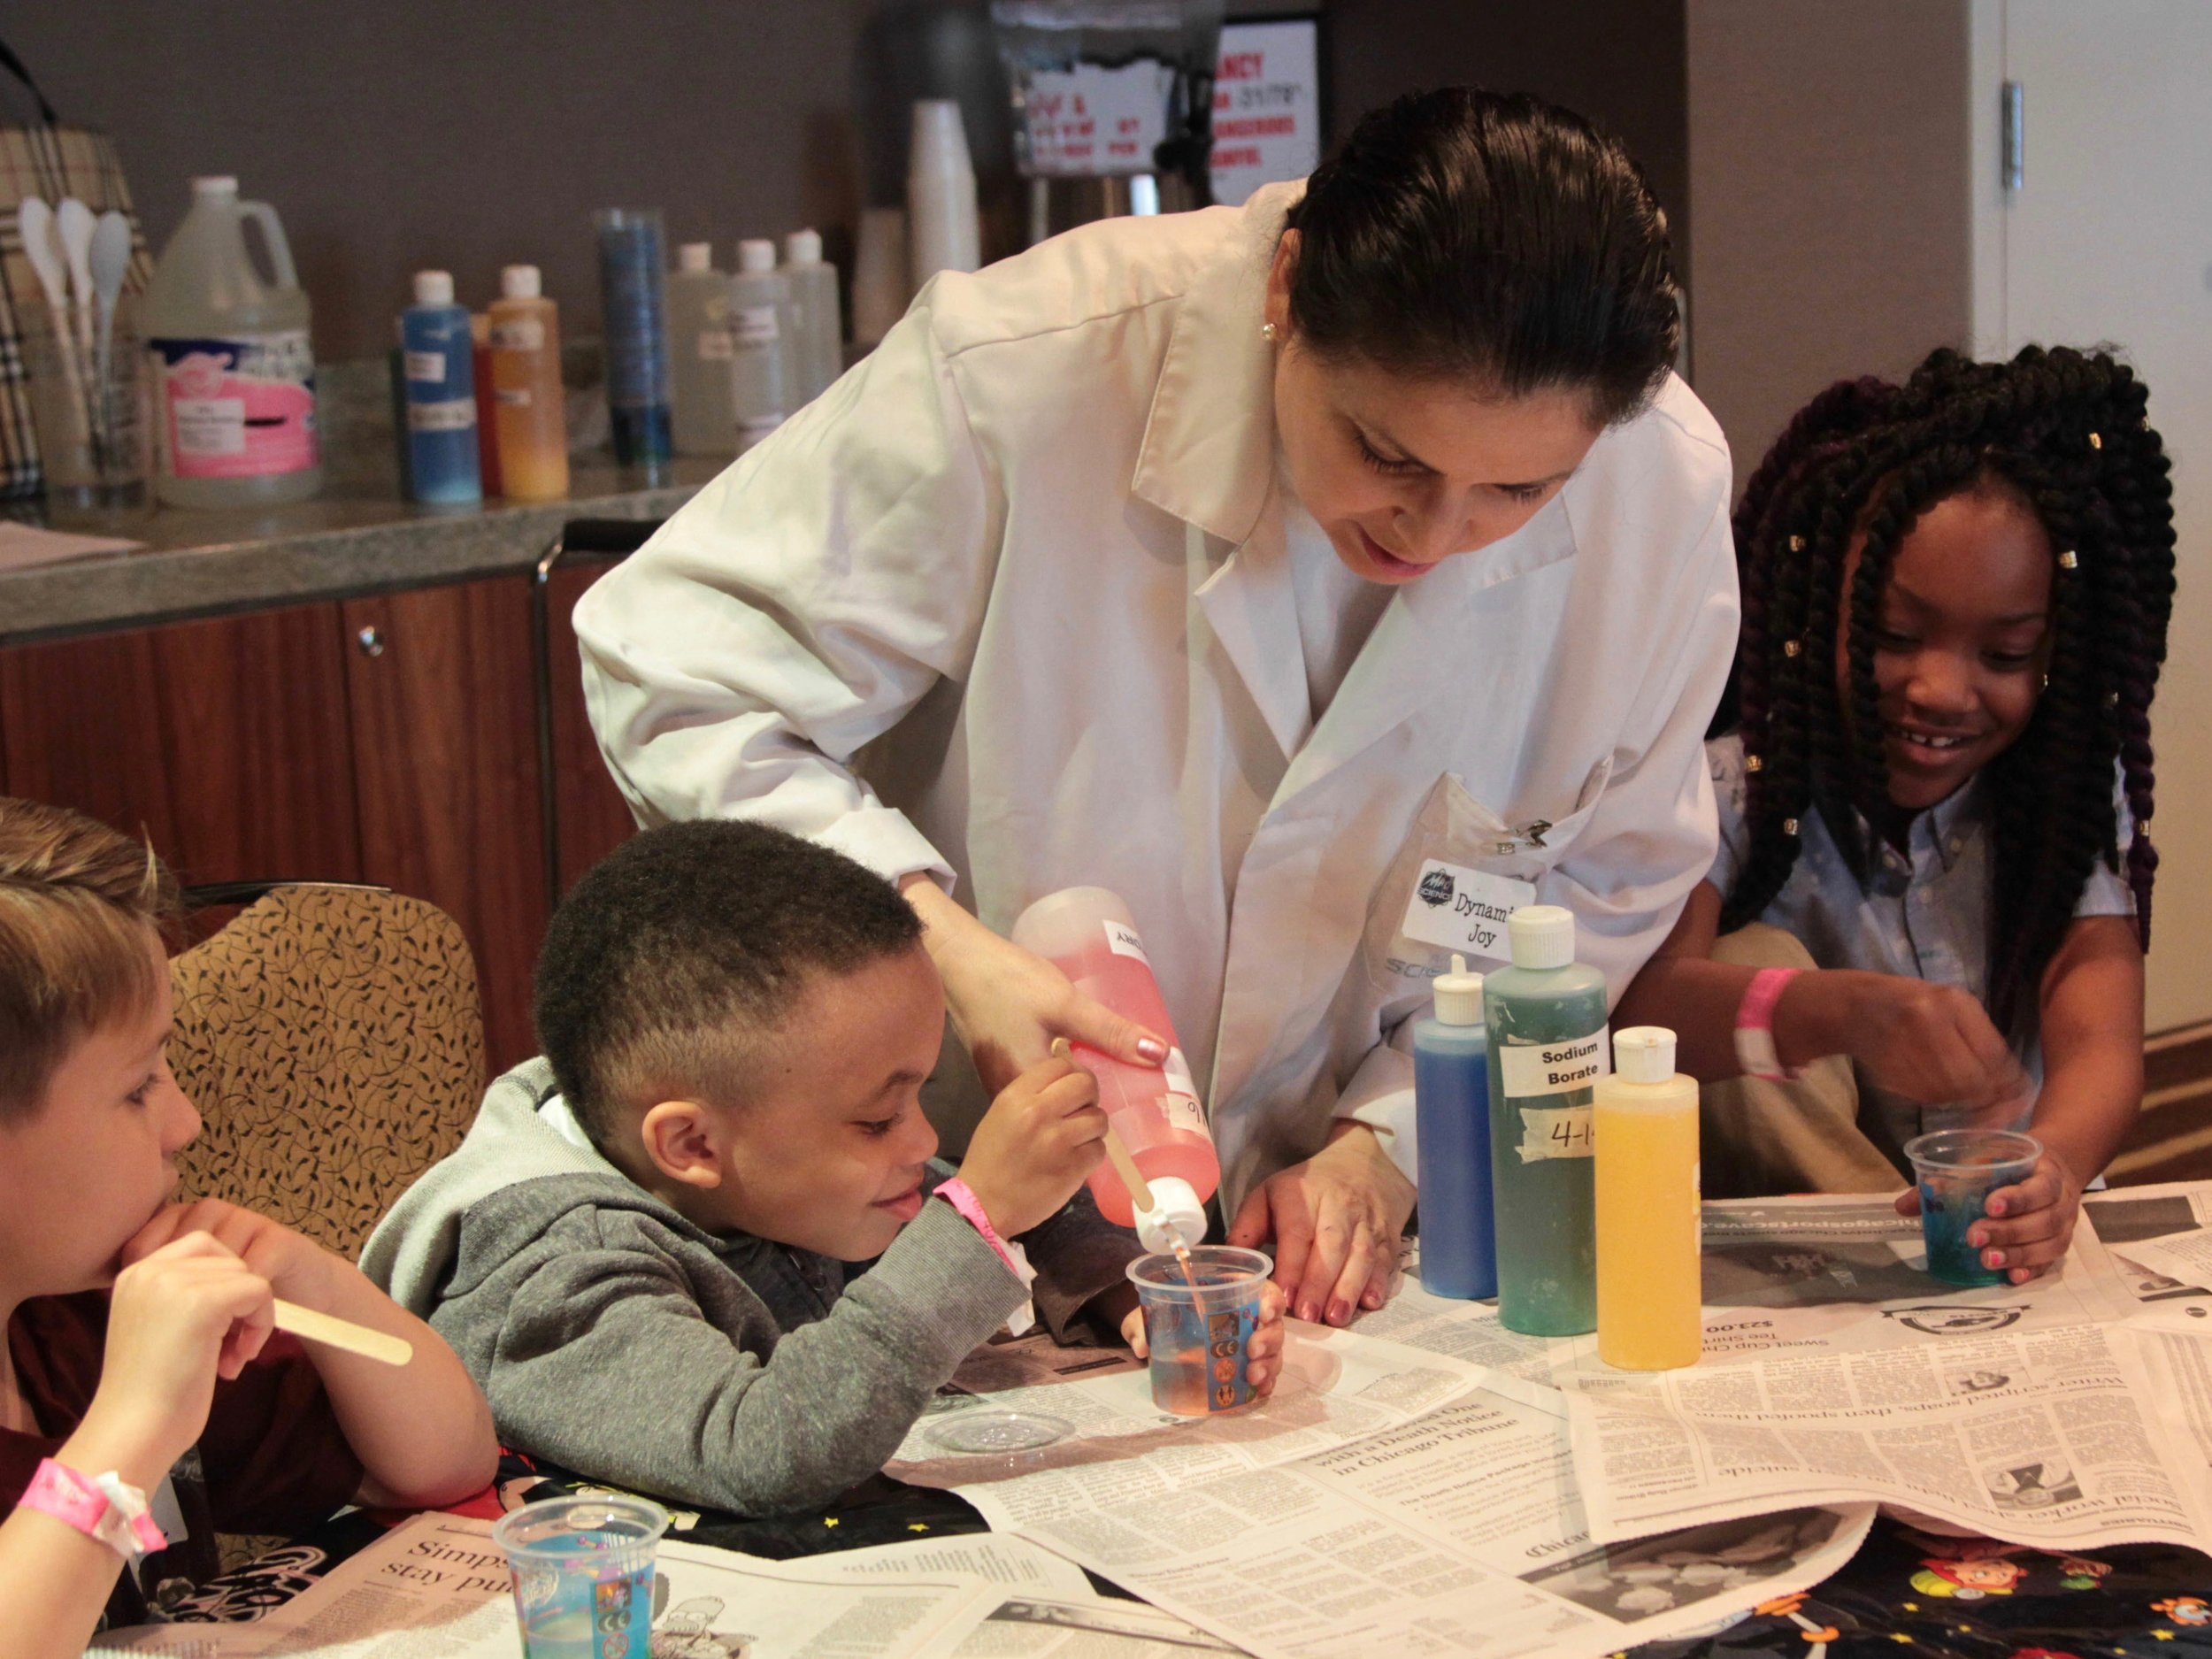 Children receive care as part of a 2016 Army training session in Chicago. (U.S. Army Reserve/Maj. Michael Garcia)